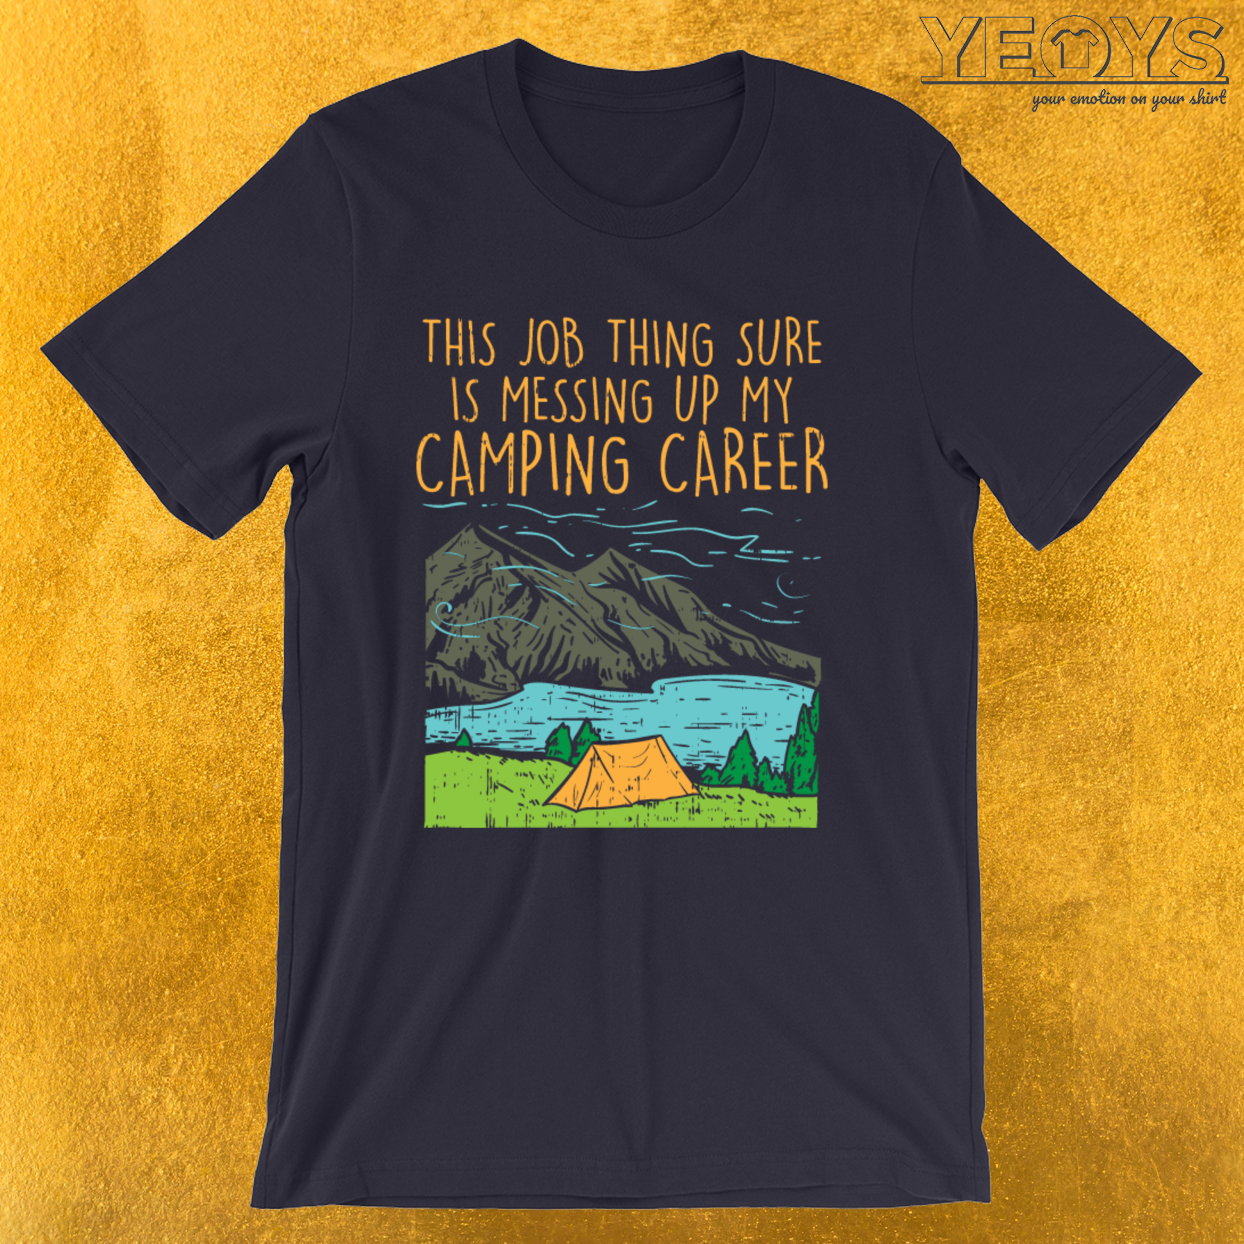 Camper – This Job Thing Sure Is Messing Up My Camping Career Tee